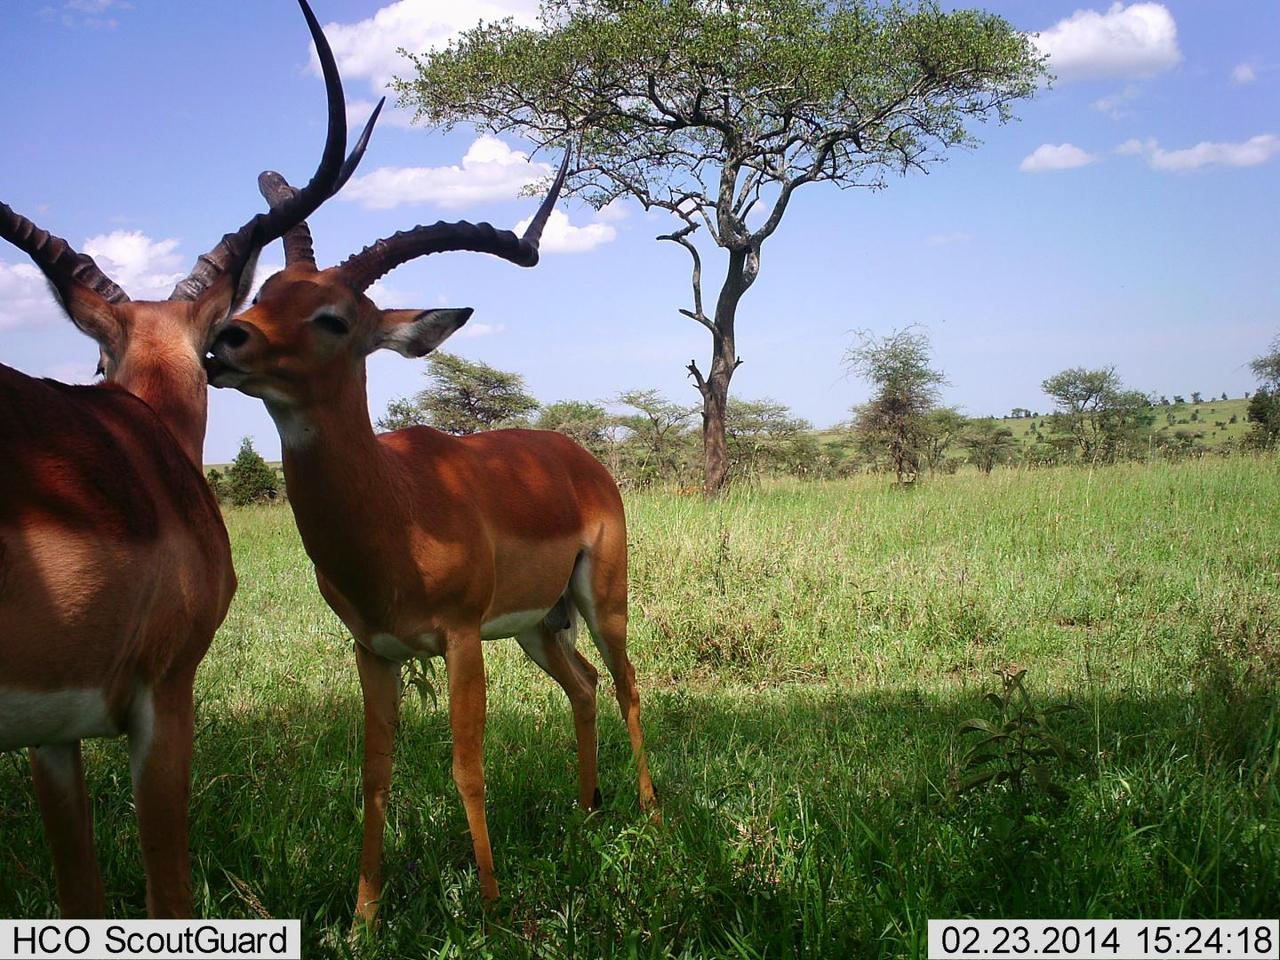 A camera trap photo, which the AI system correctly reported as a picture of two impala standing